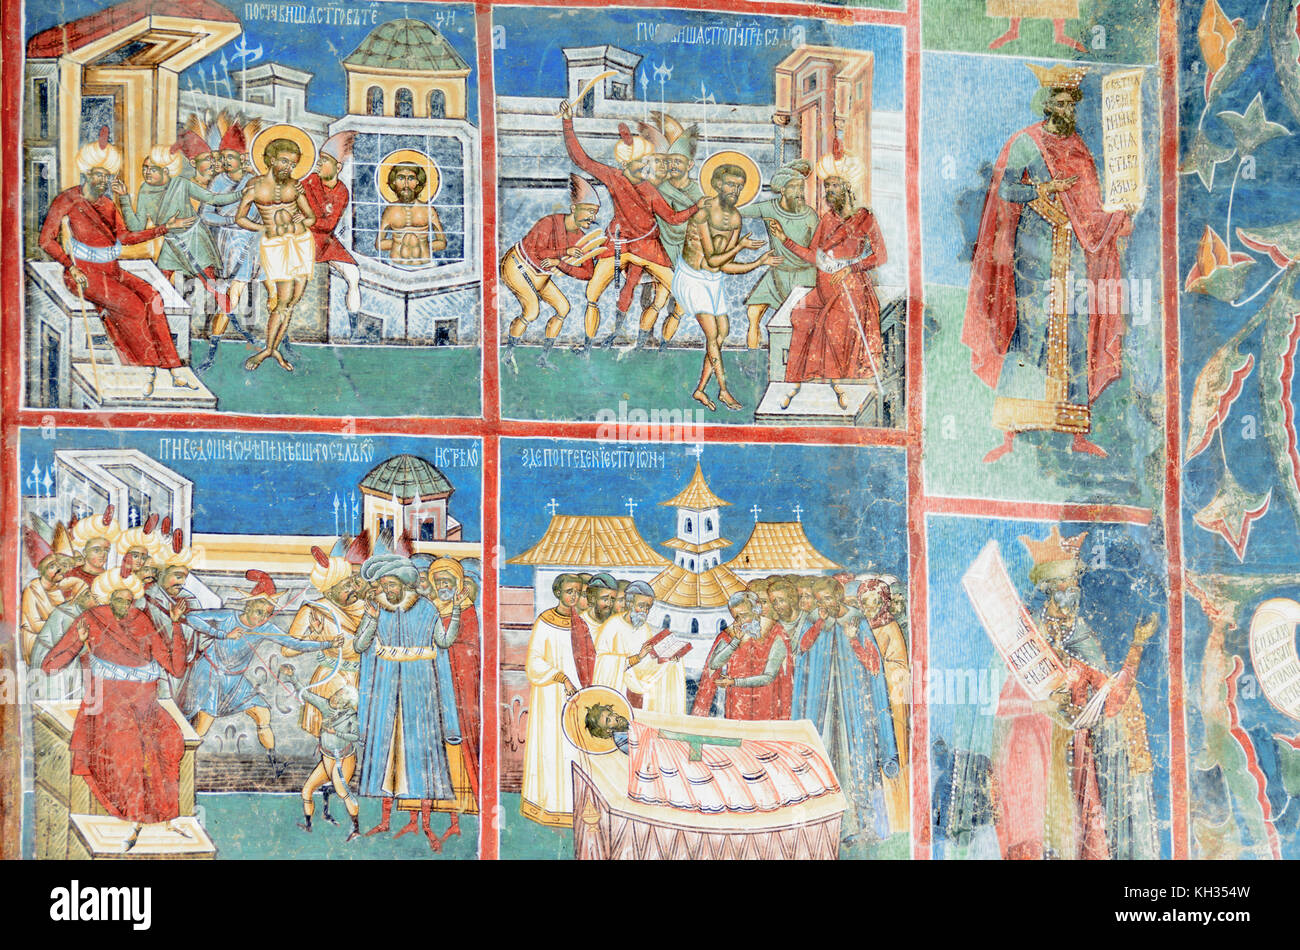 Fresco mural stock photos fresco mural stock images alamy for Clarks mural fresco